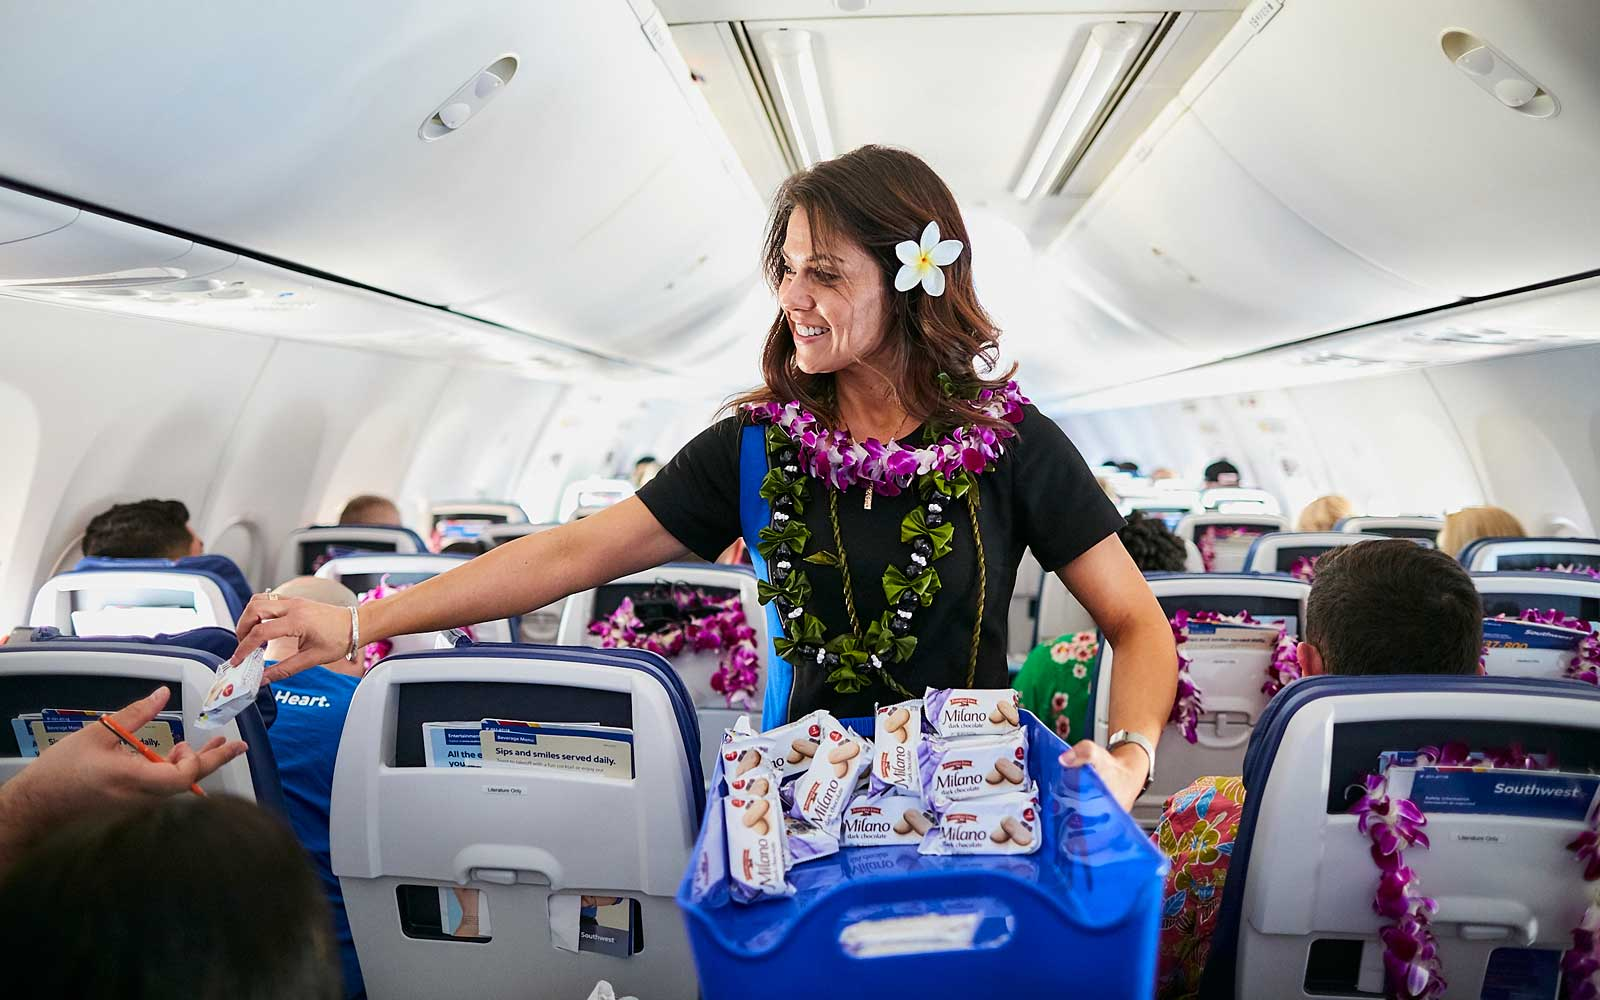 Southwest Just Launched Flights to Hawaii — Here's What to Know About the New Routes